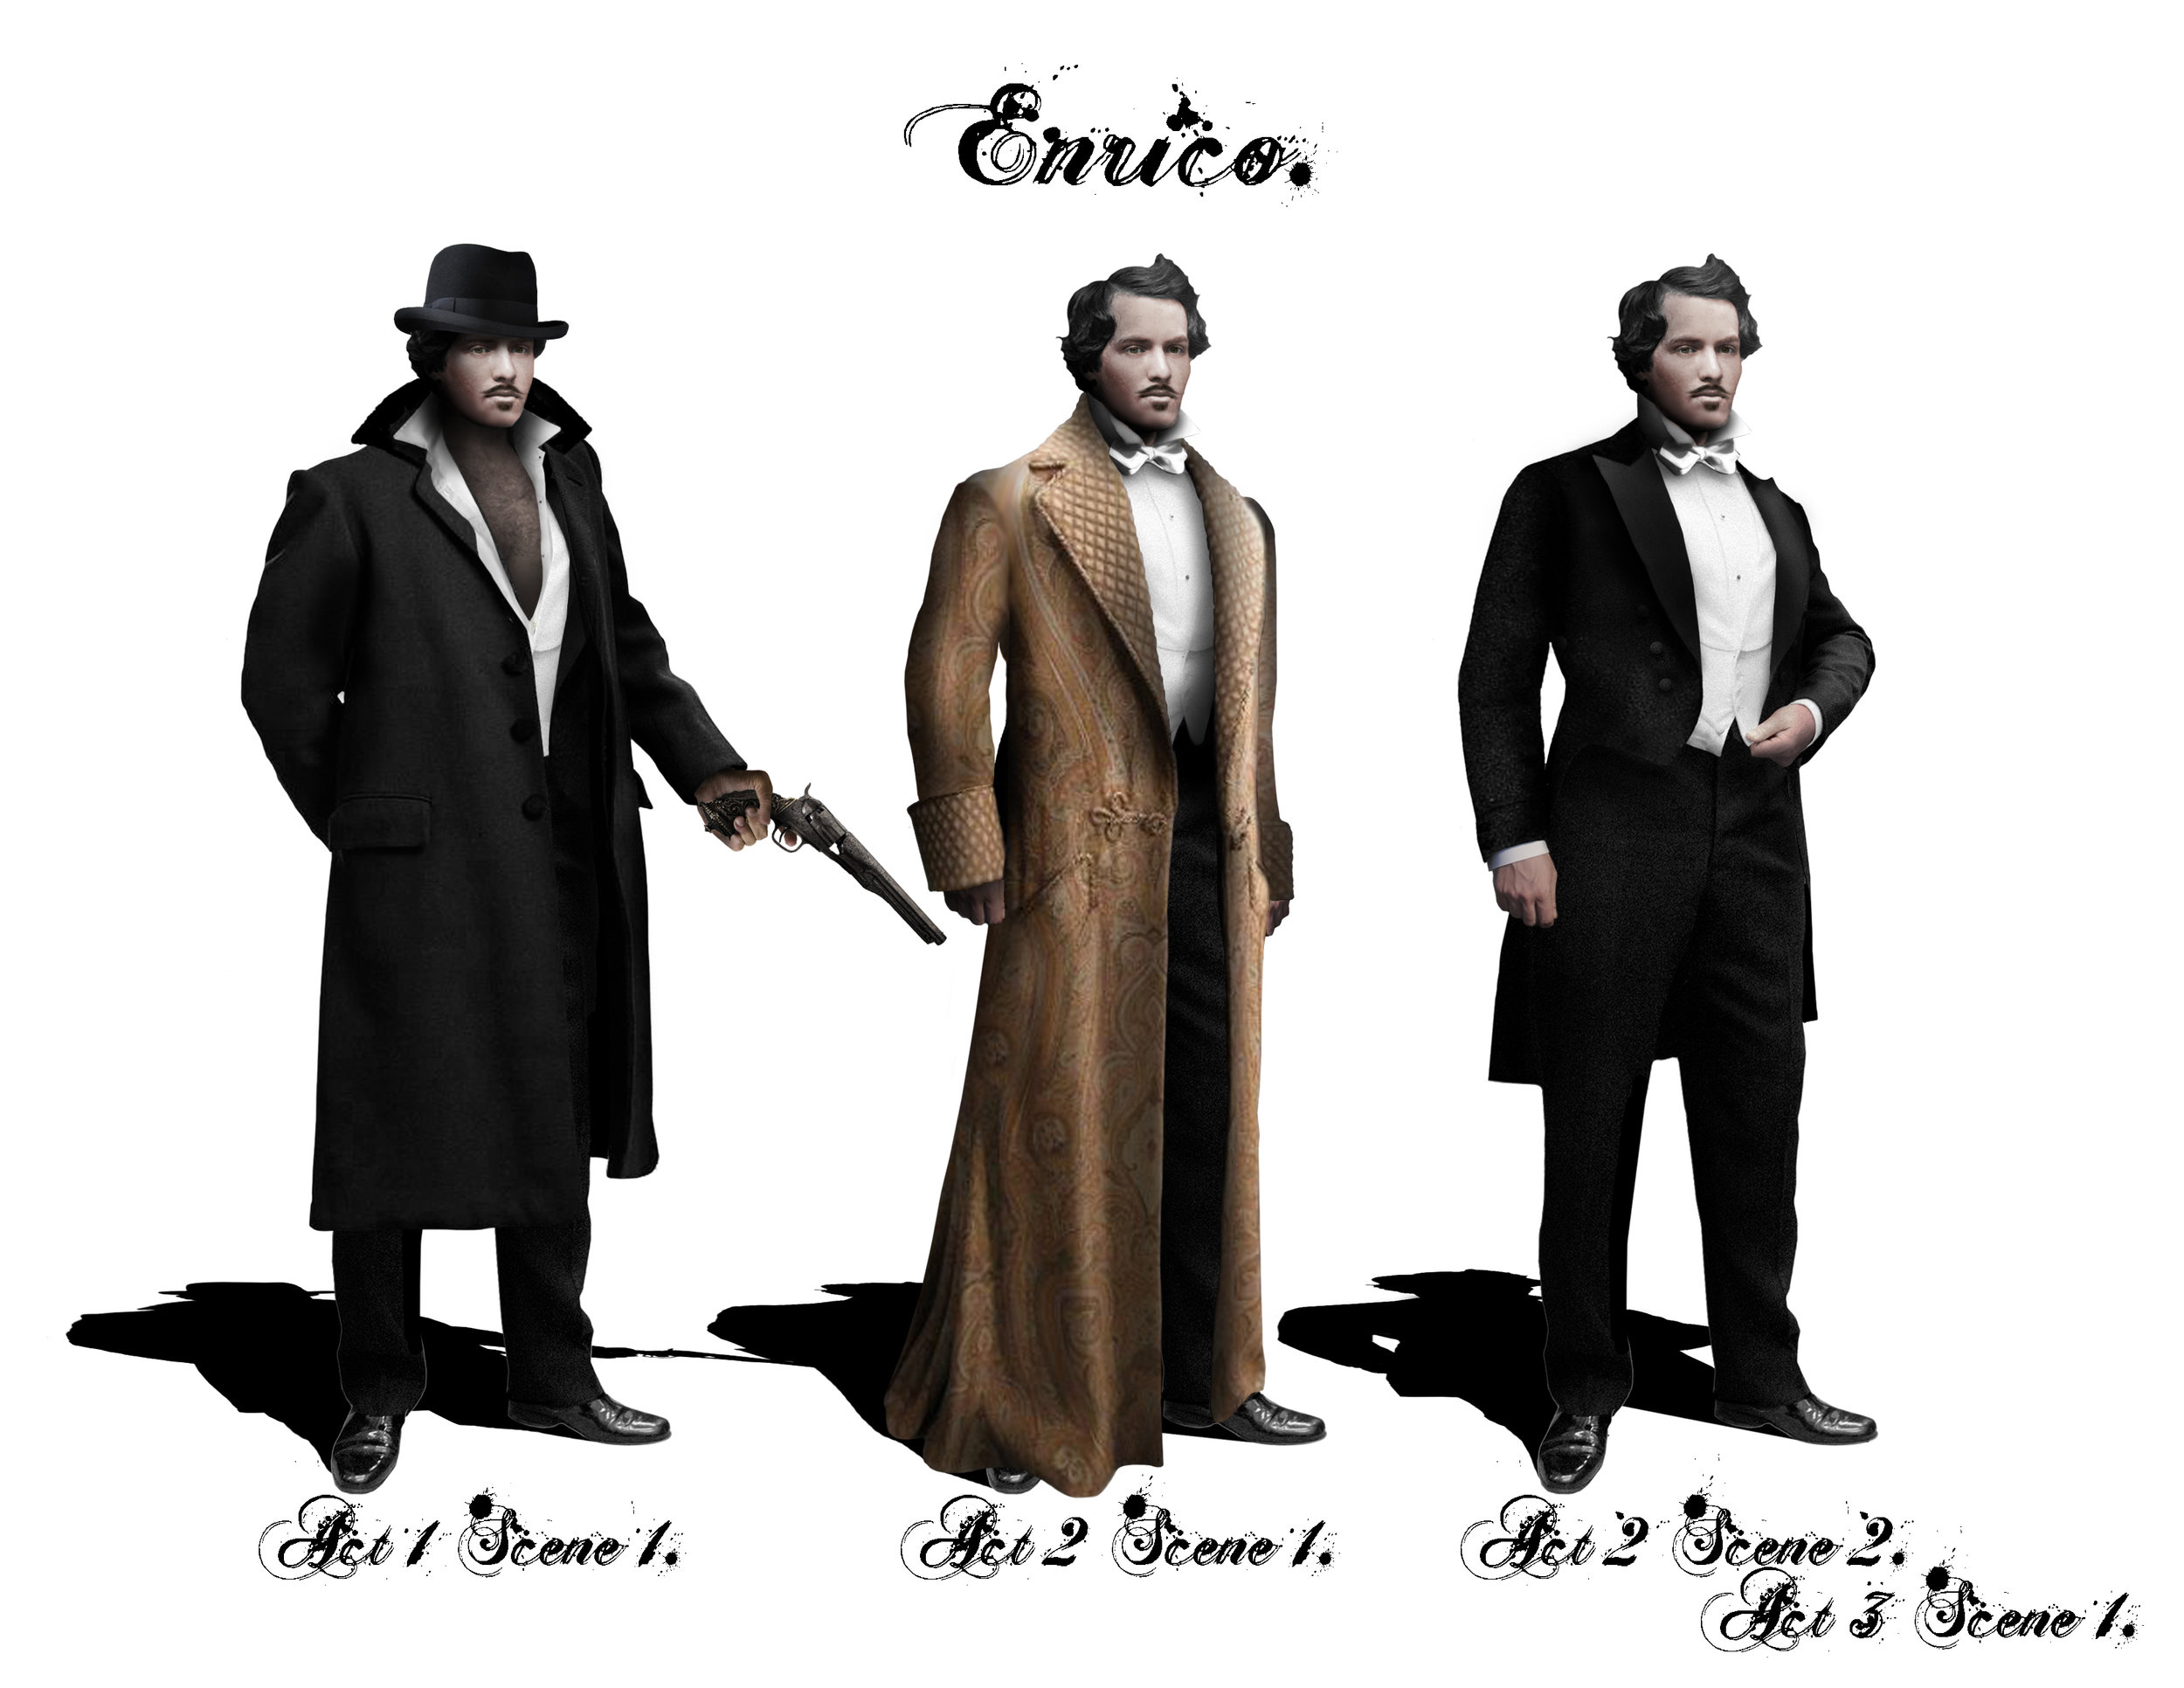 ENRICO - Costume Designs